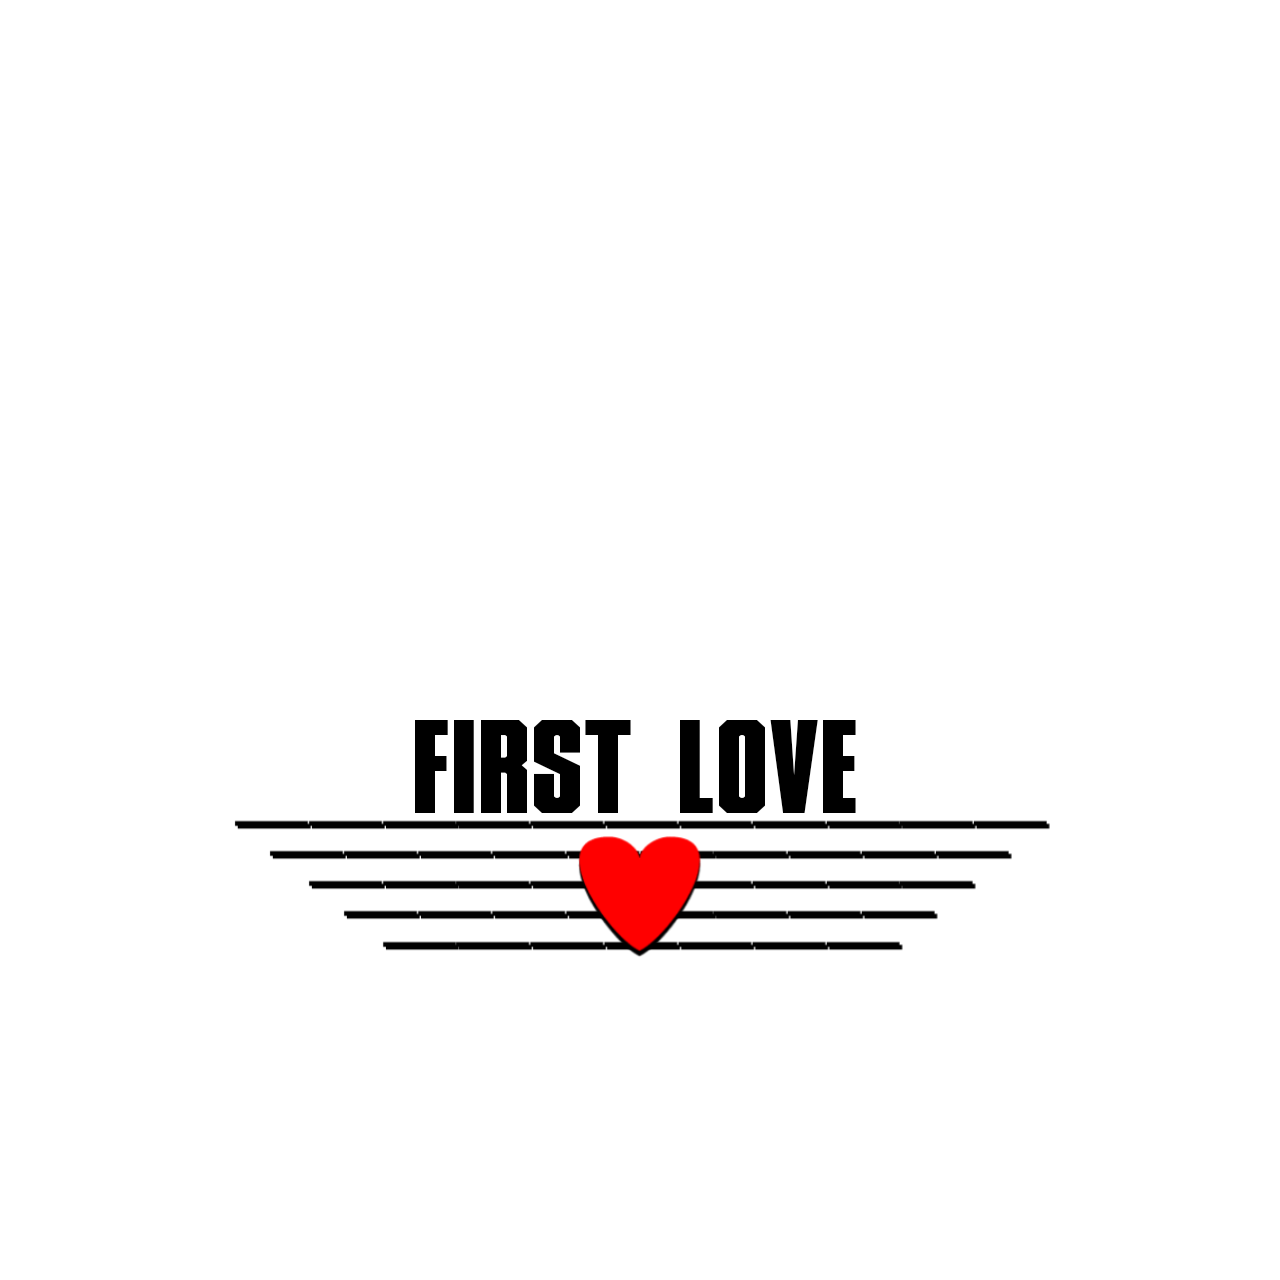 Png images for editing. Black love text material